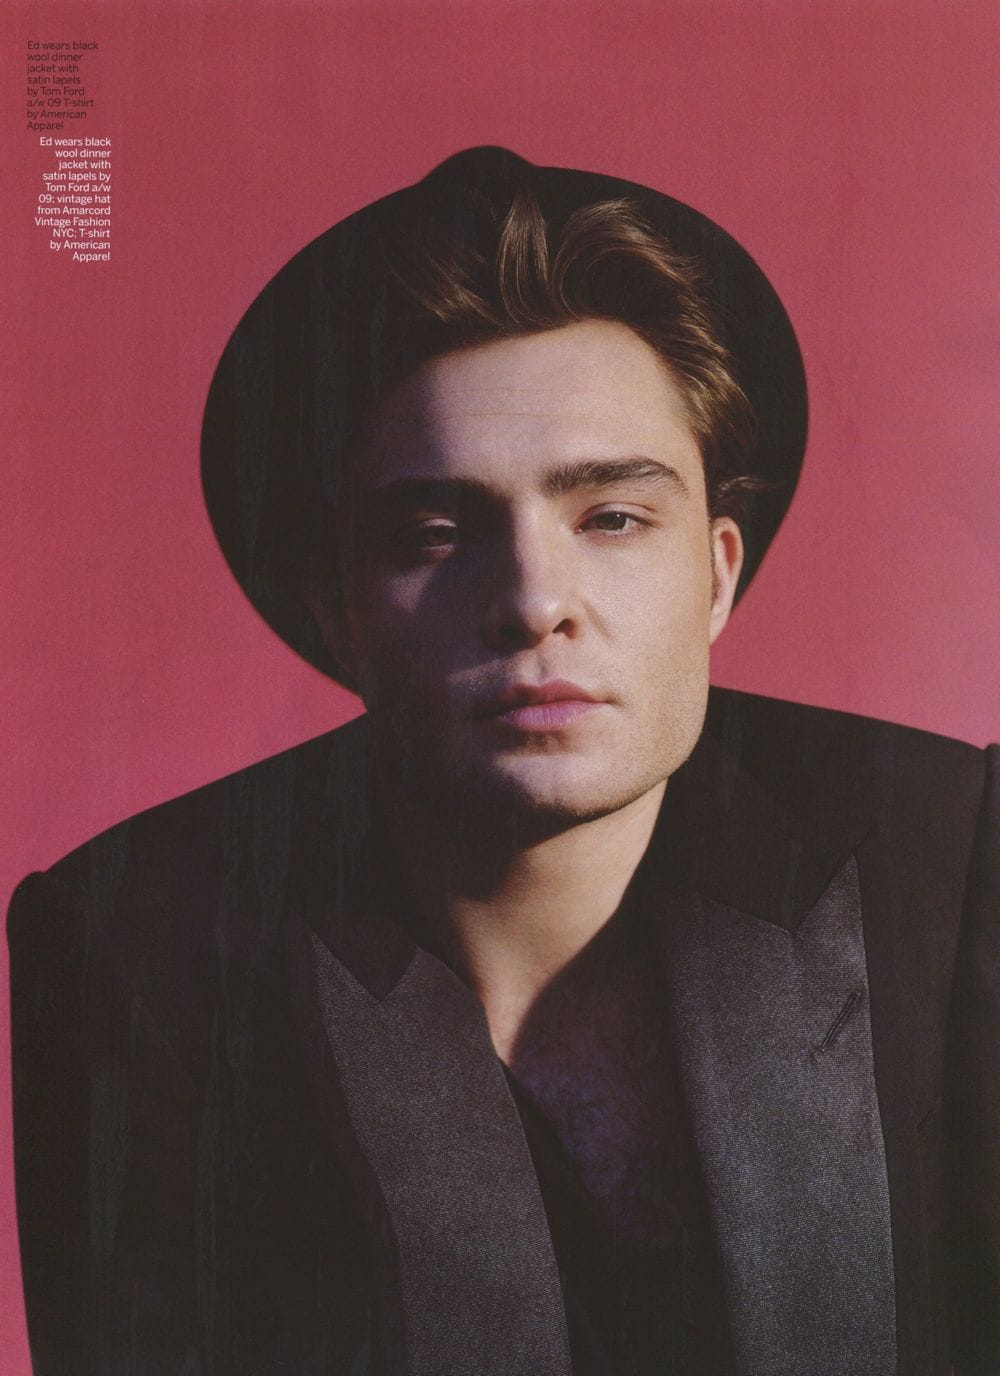 Picture of Ed Westwick Ed Westwick